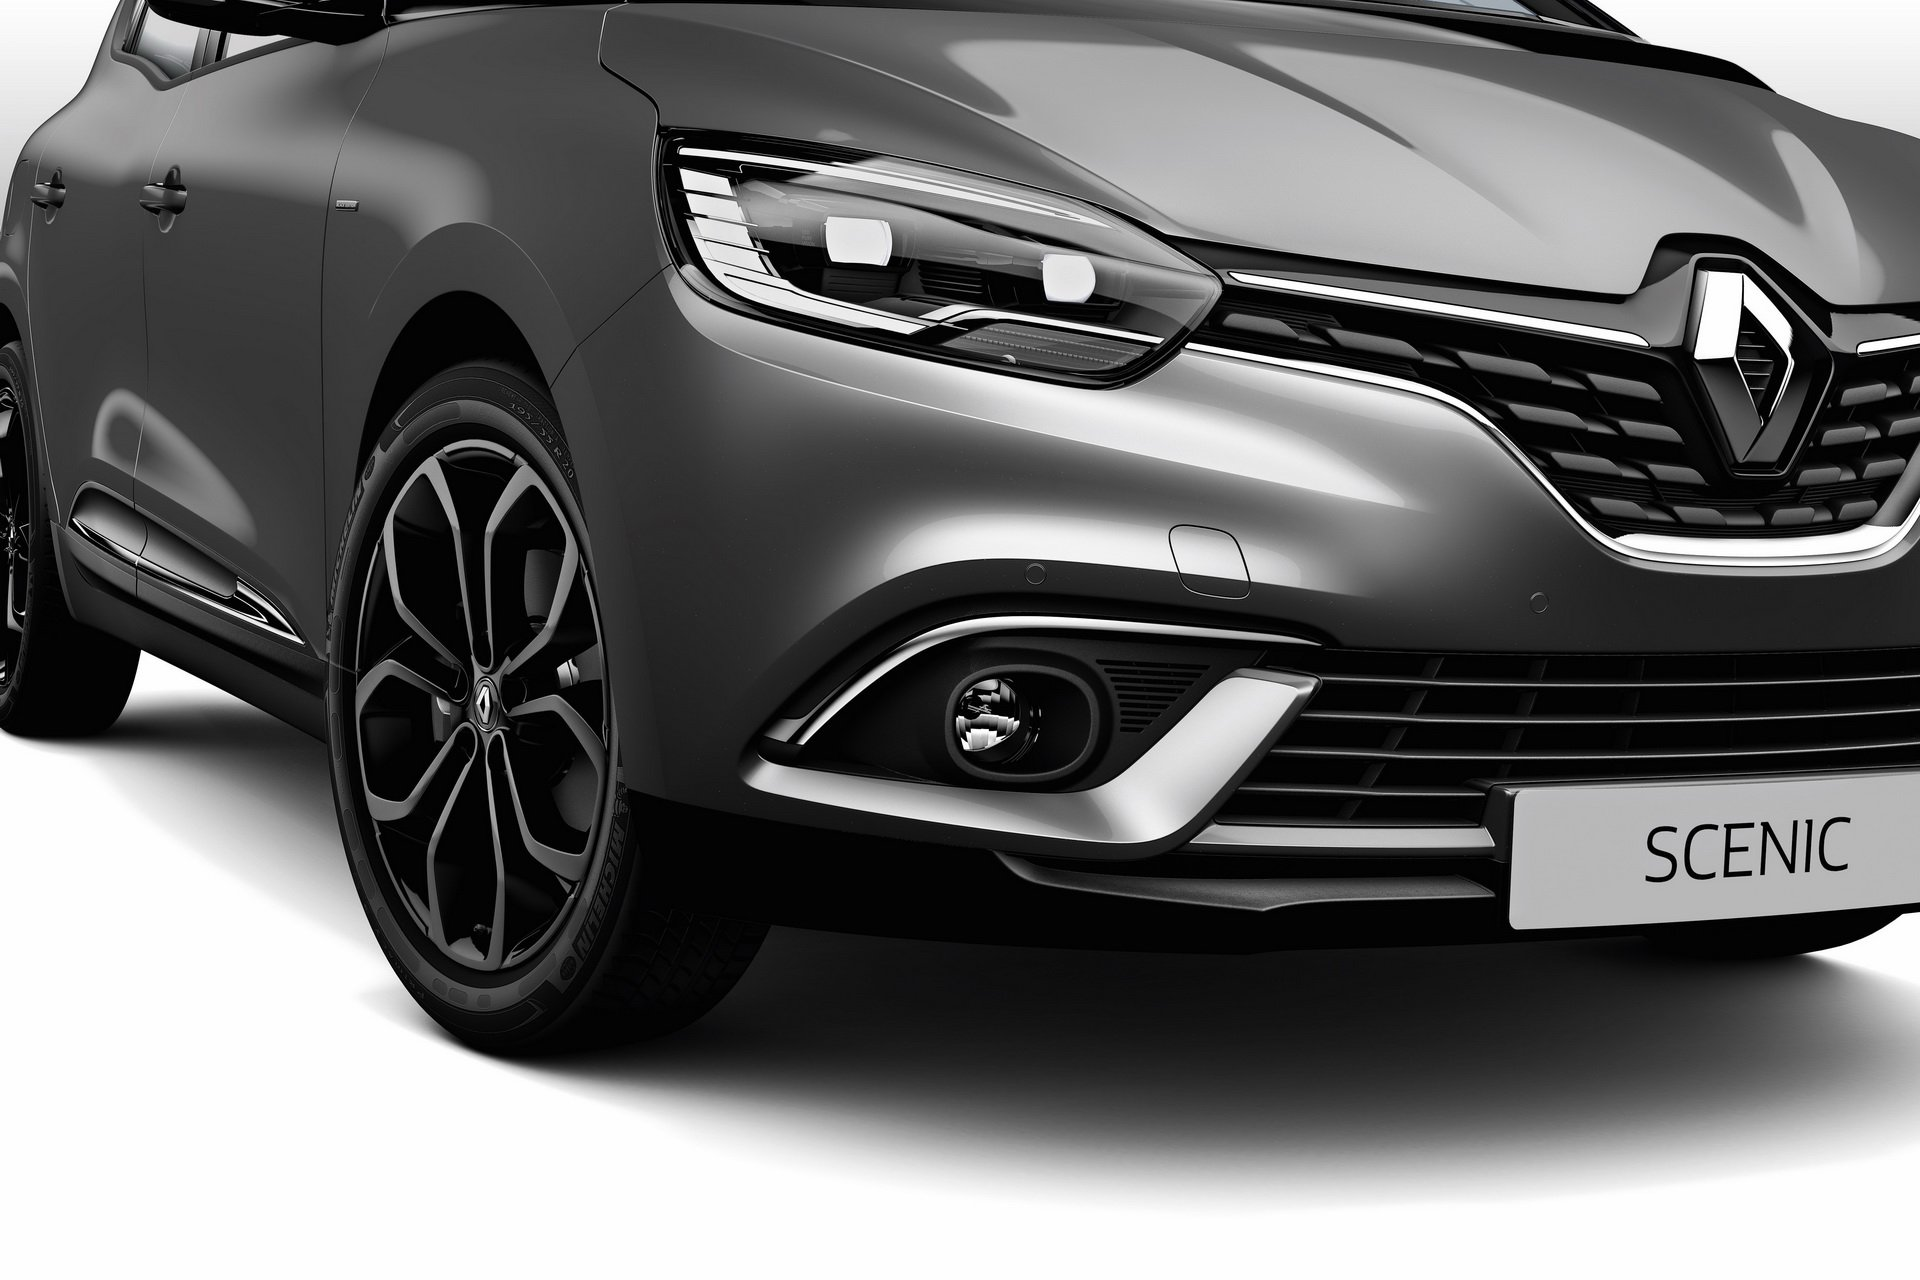 2019 Renault Scenic  Grand Scenic Now Available As Black